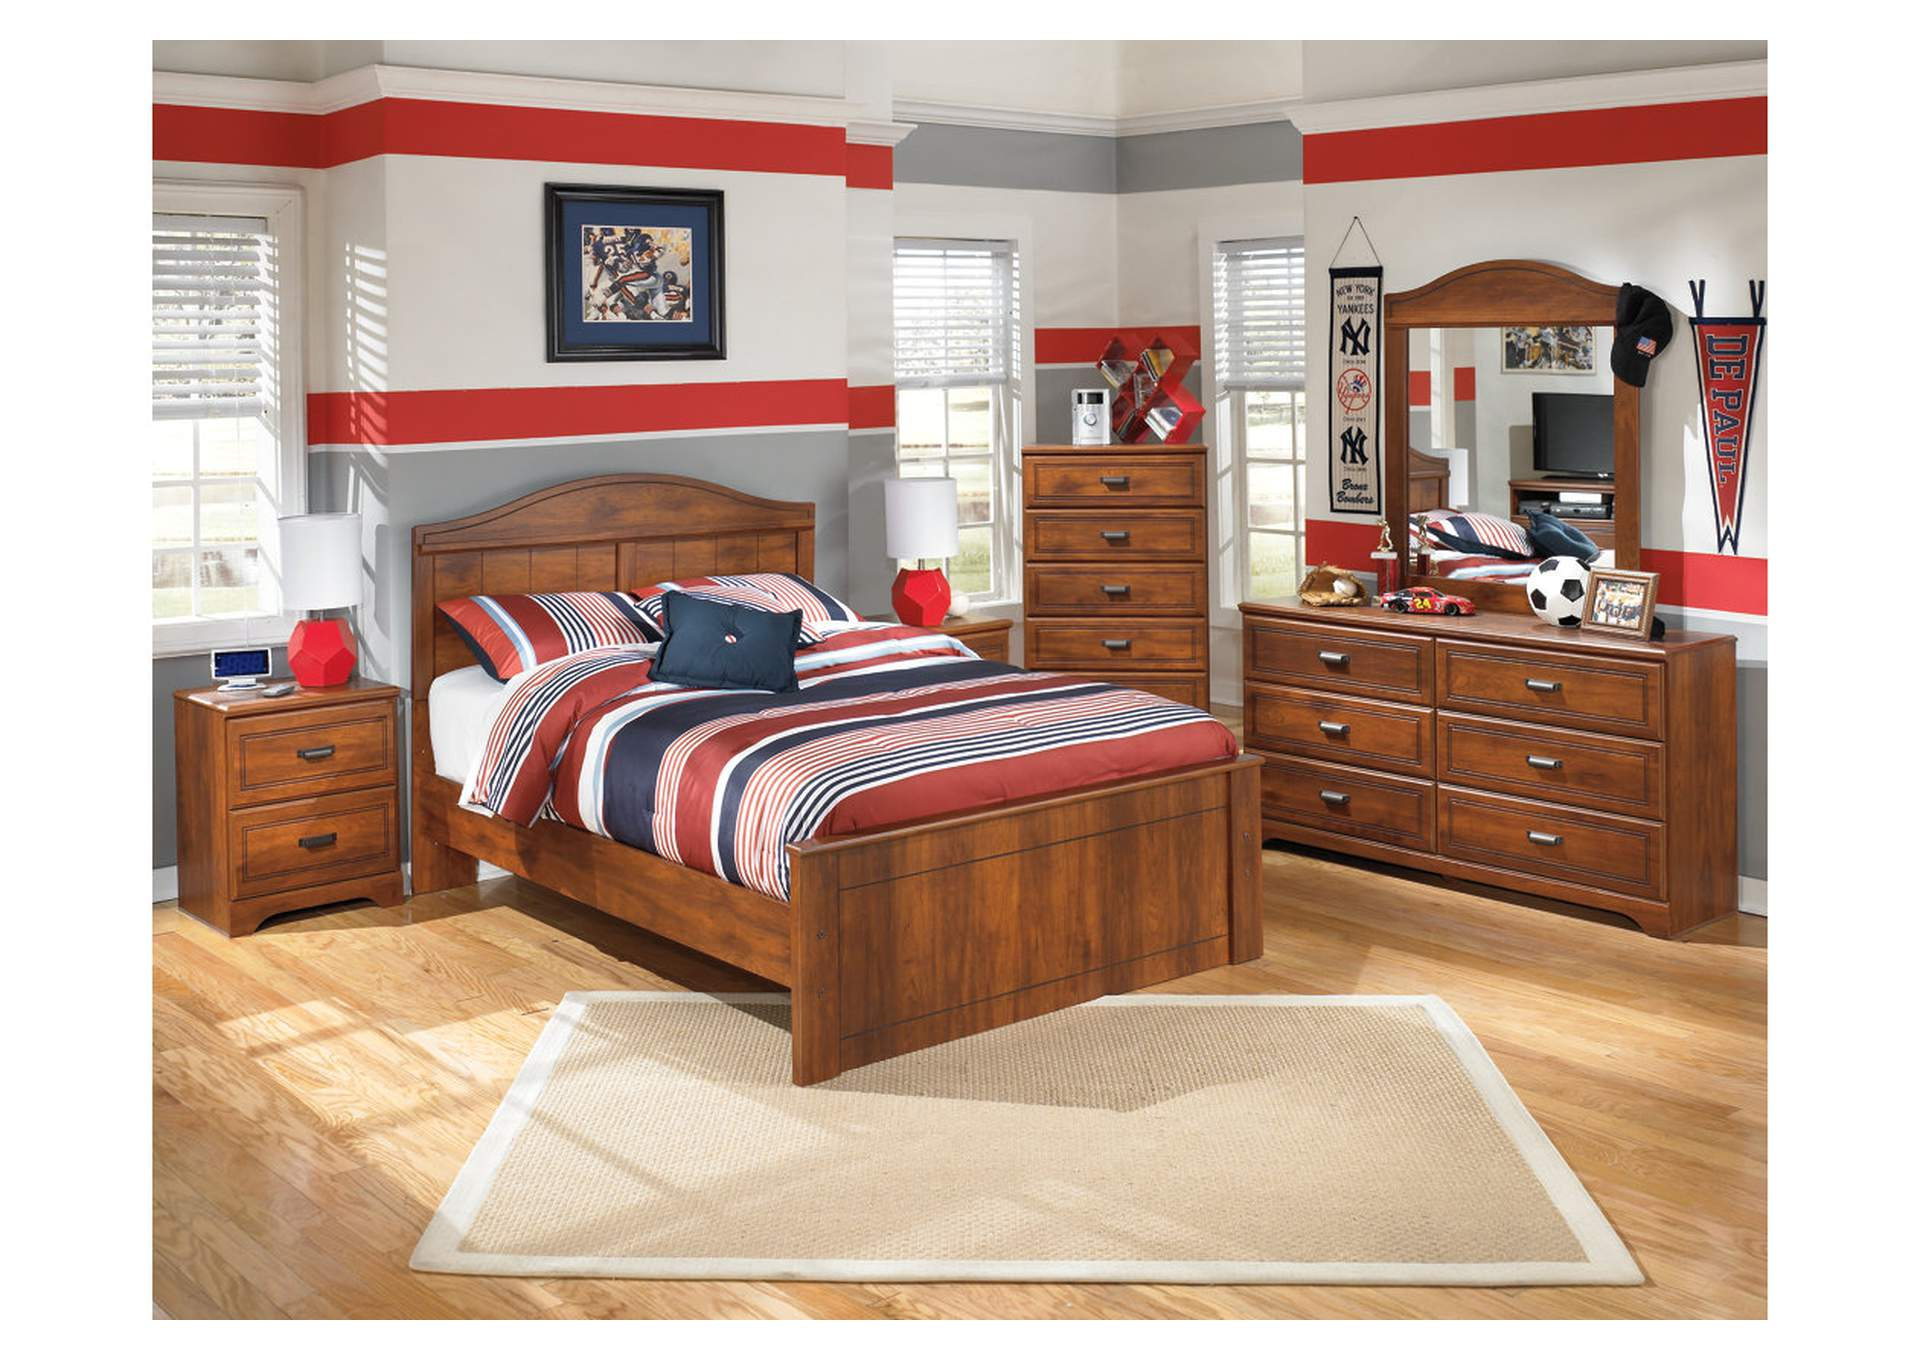 Barchan Full Panel Bed w/Dresser, Mirror & Drawer Chest,Signature Design By Ashley